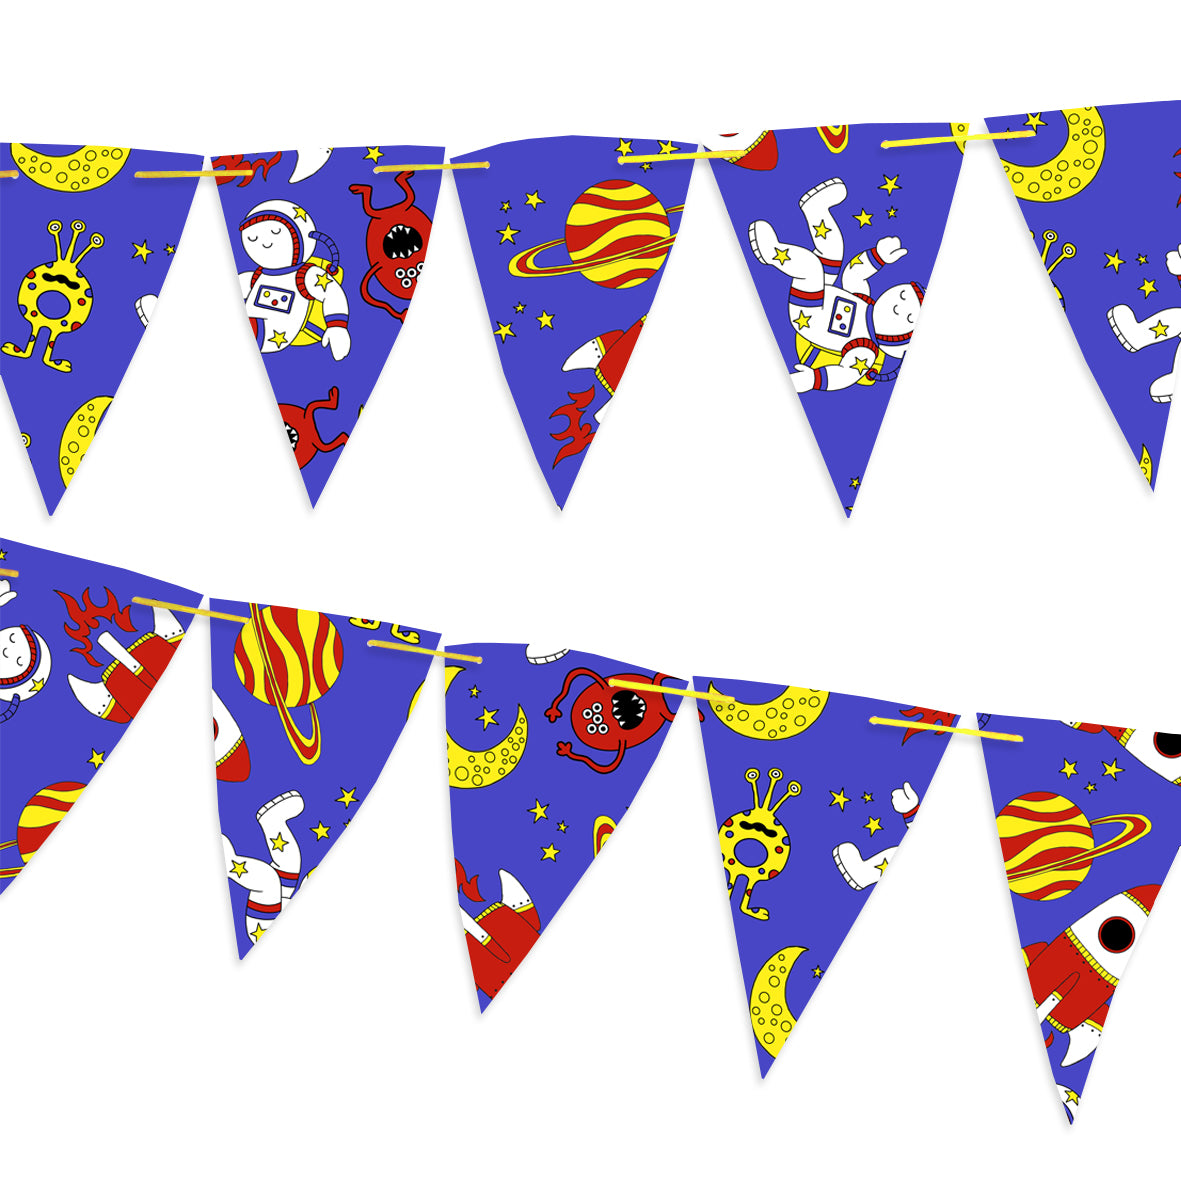 Blue bunting covered with moons, stars and rockets